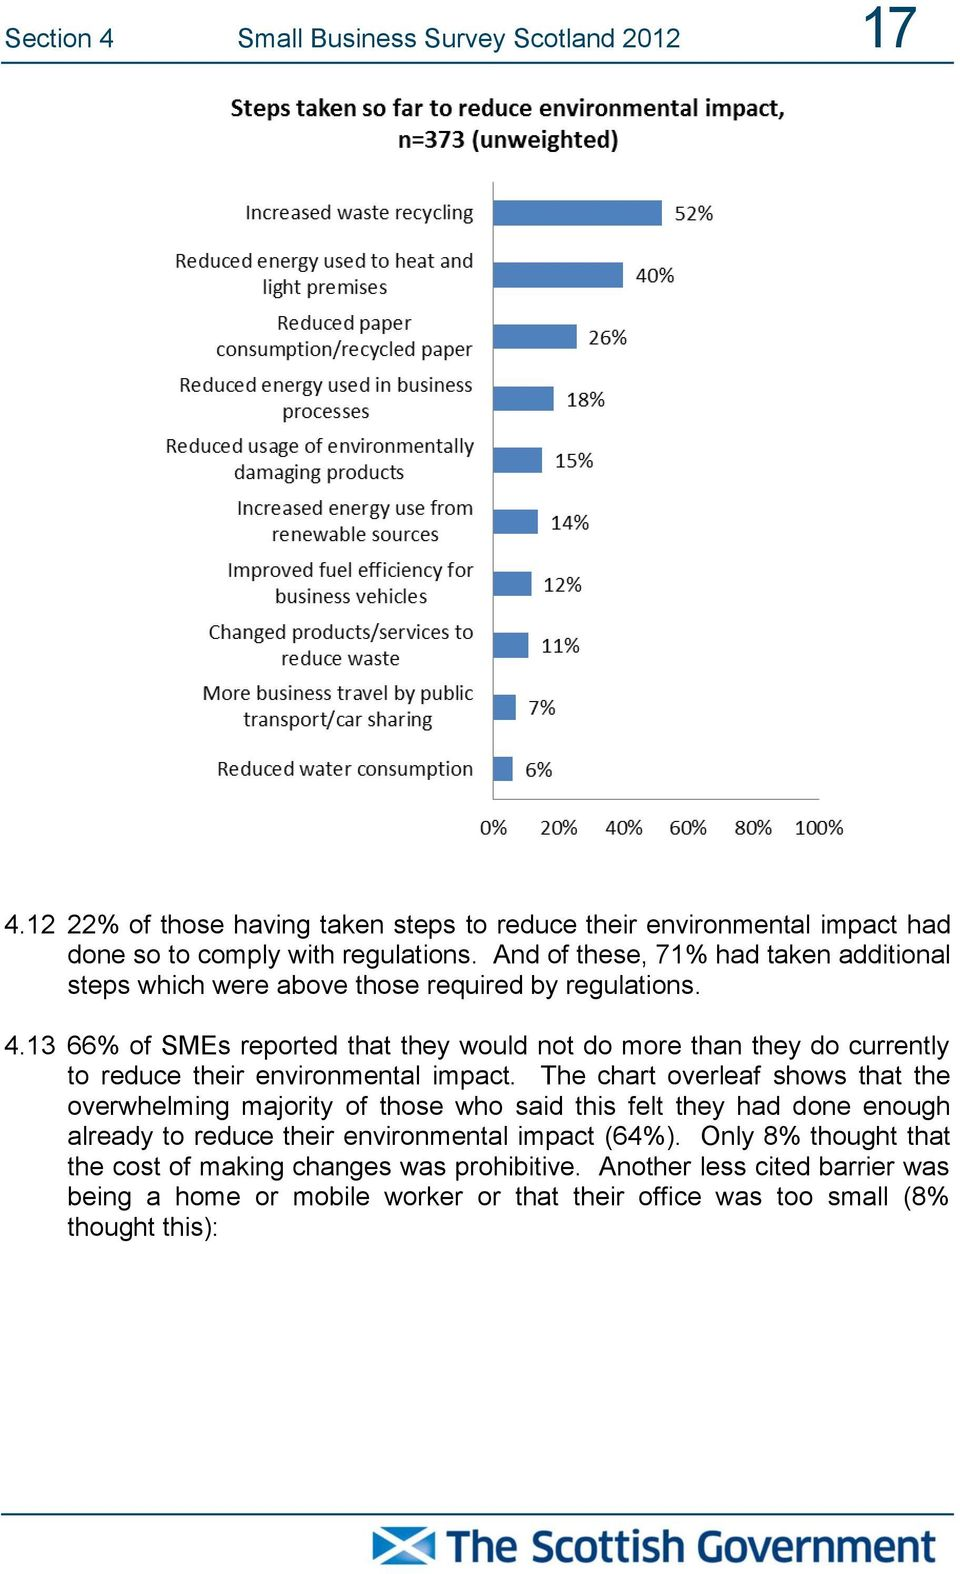 13 66% of SMEs reported that they would not do more than they do currently to reduce their environmental impact.